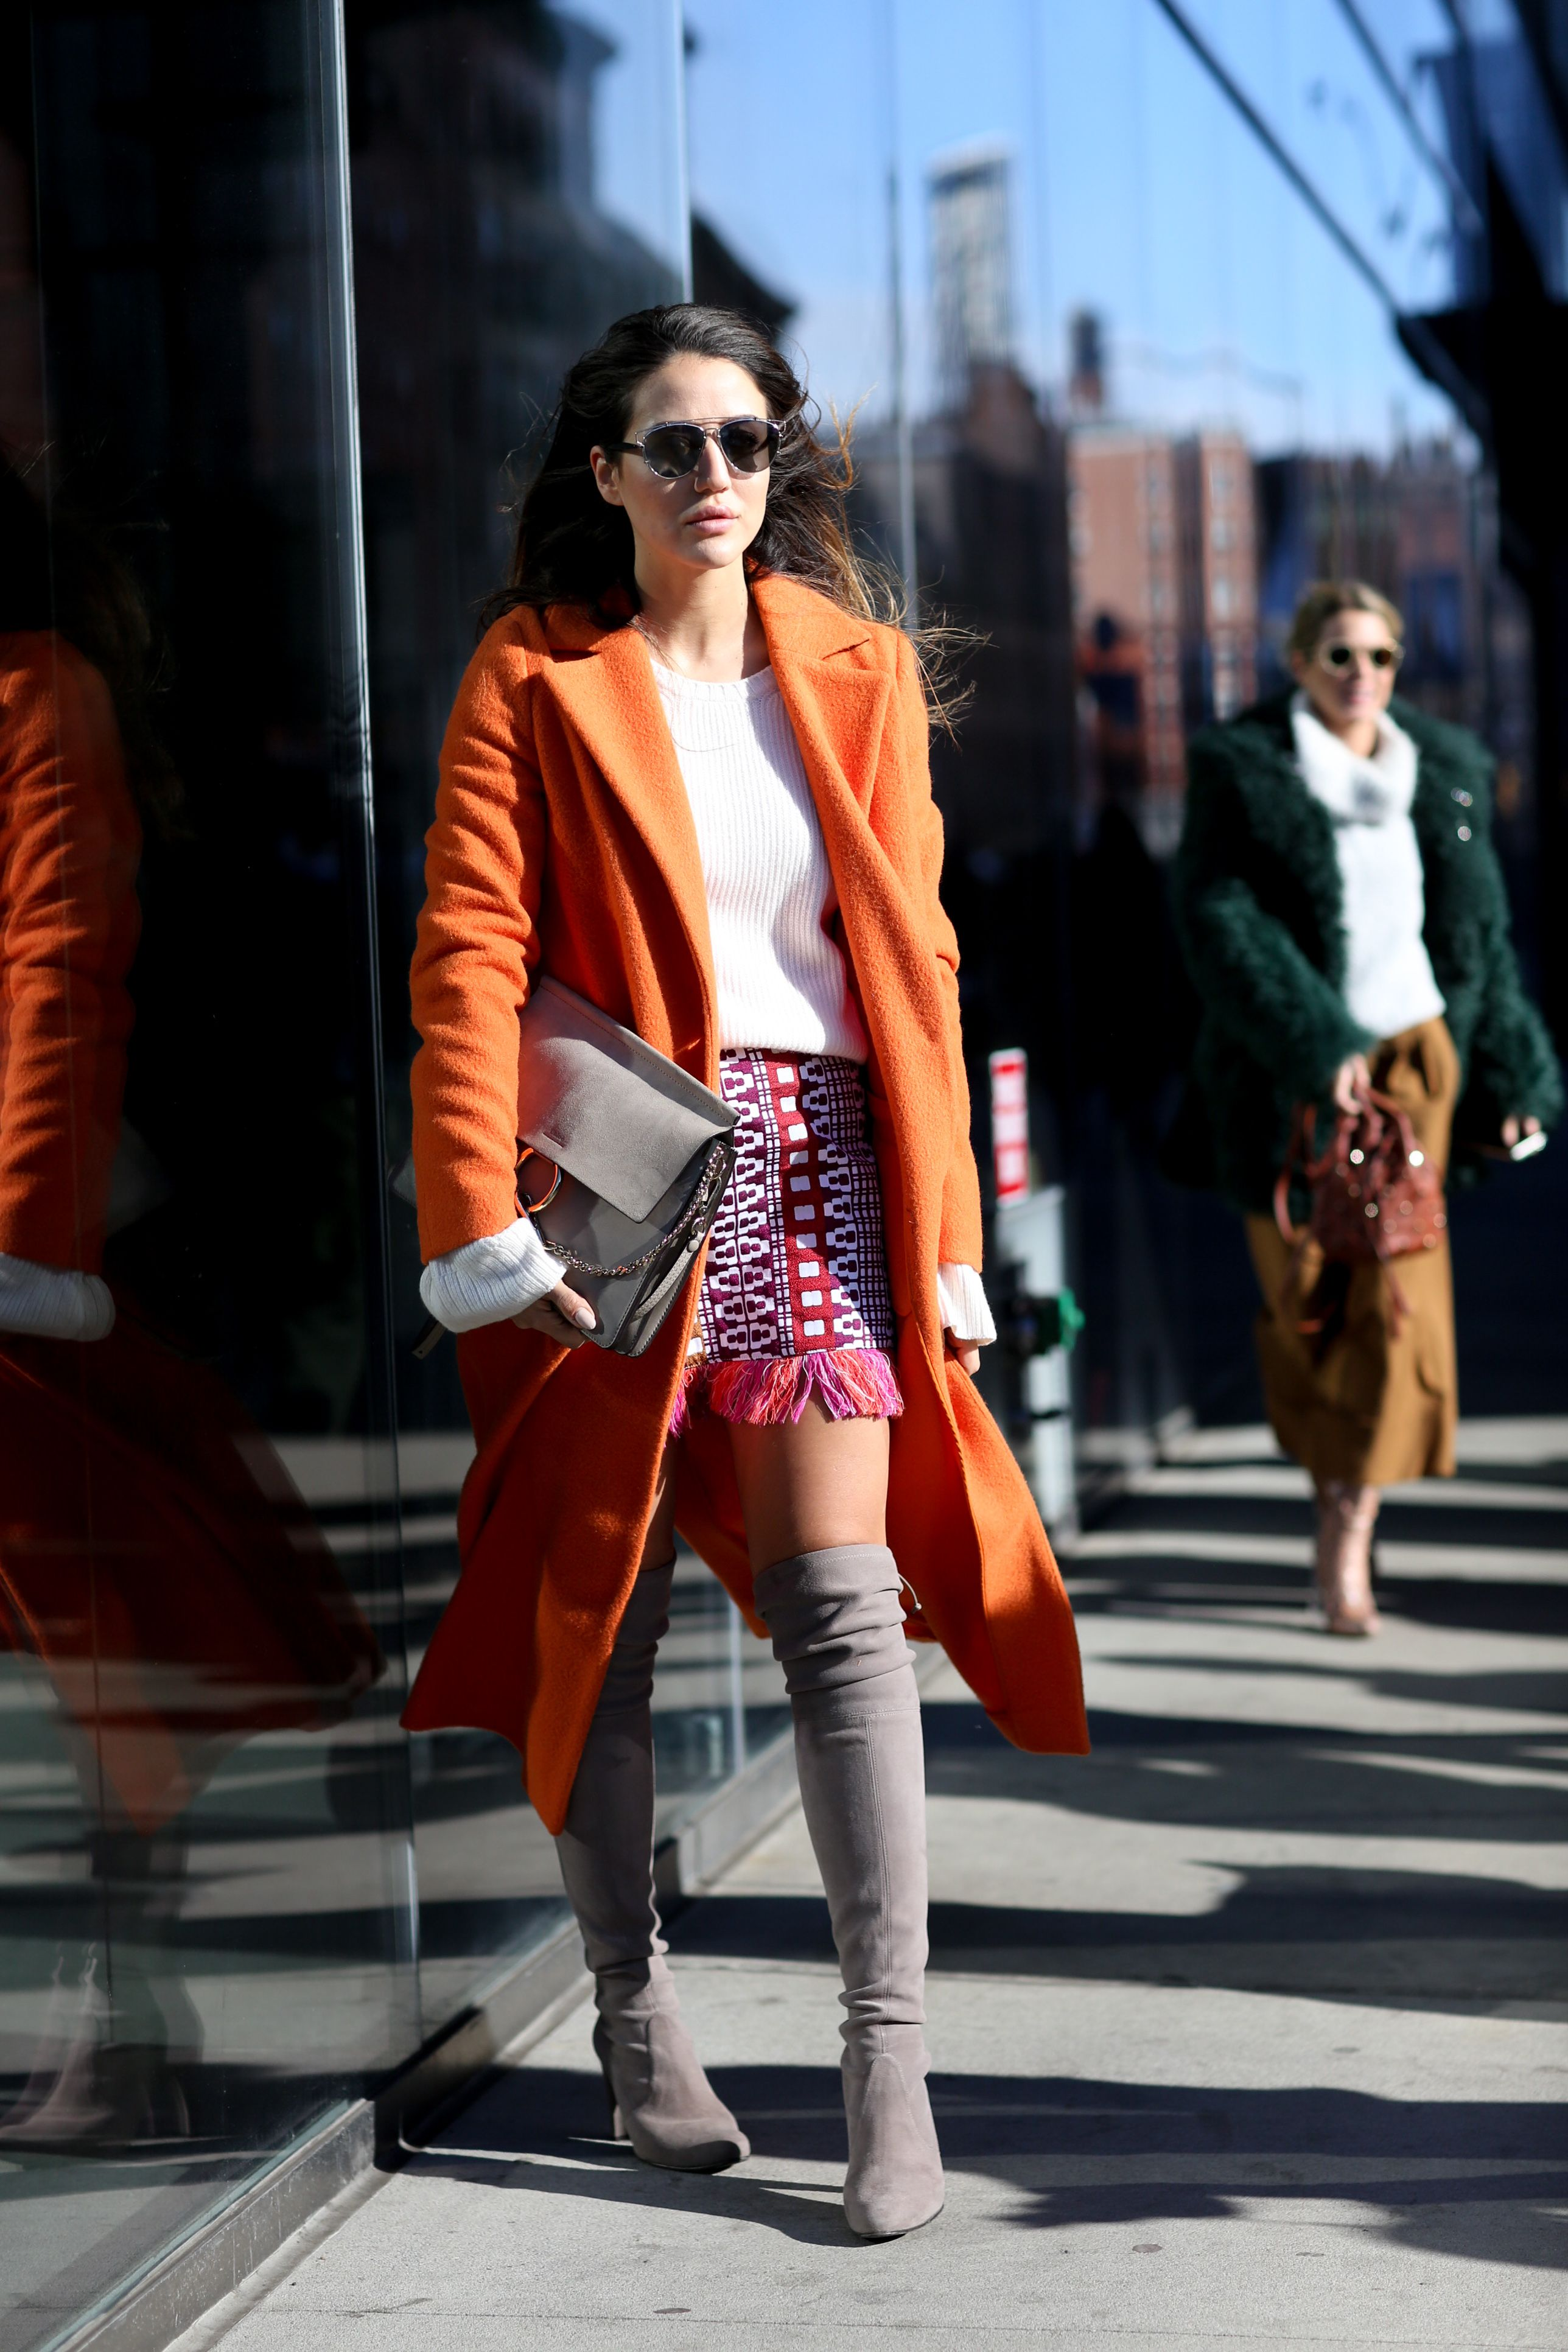 Tamara Kalinic in a PINKO total look from Spring Summer 2016 collection  during New York Fashion Week for My PINKO Experience - February 2016 d013e092275